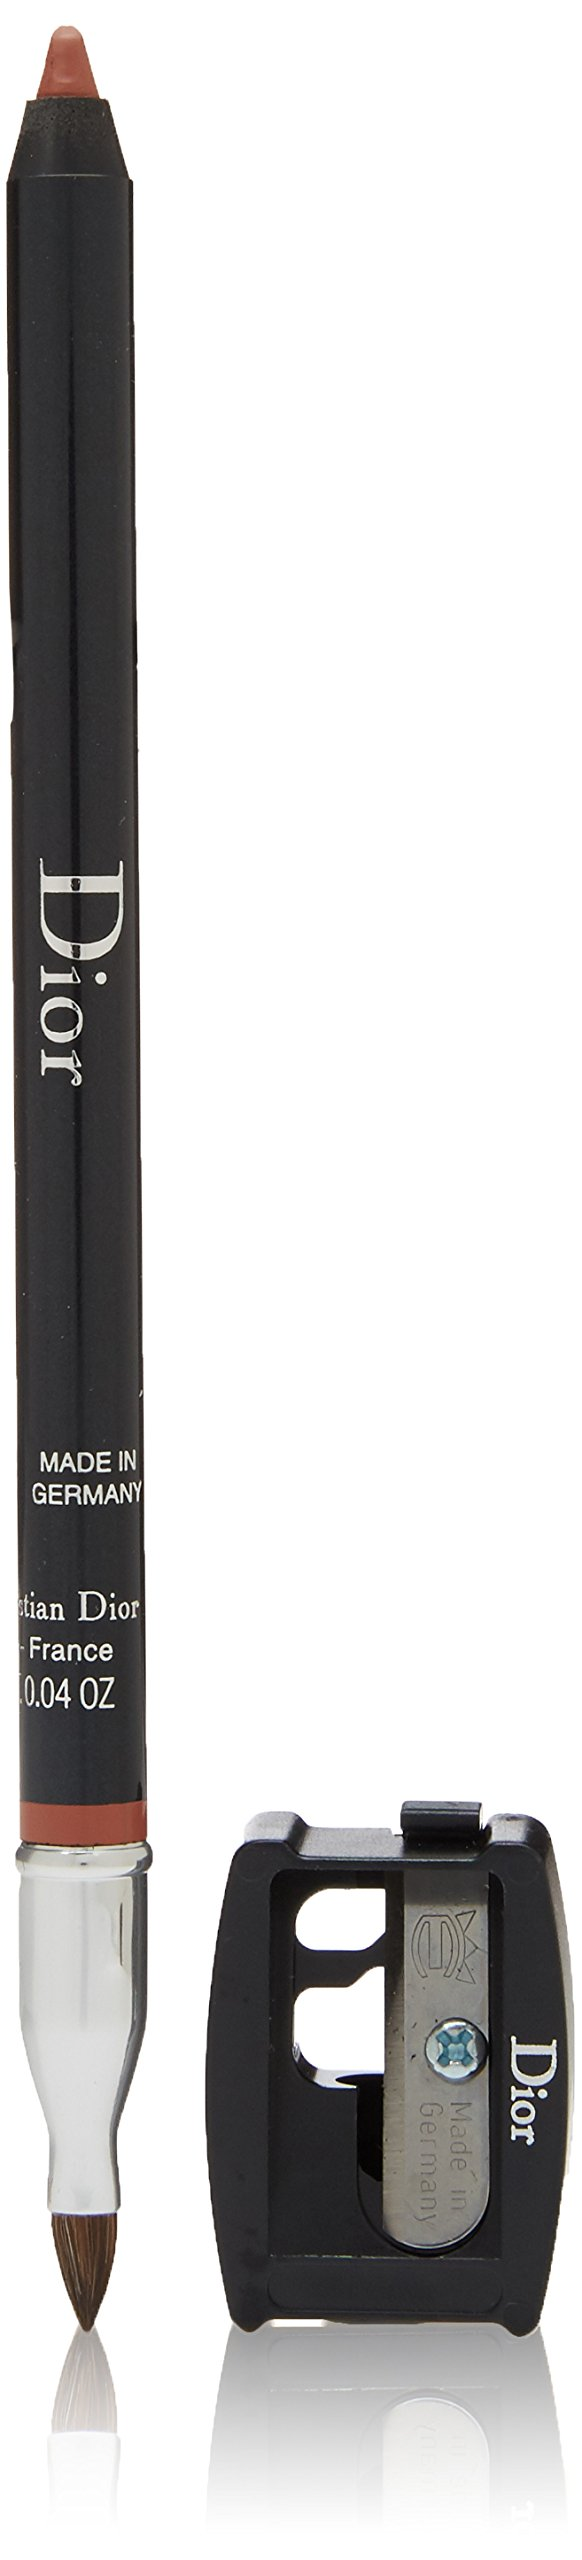 Christian Dior Contour Lip Liner Pencil for Women, 532/Jungle Brown, 0.04 Ounce by Dior